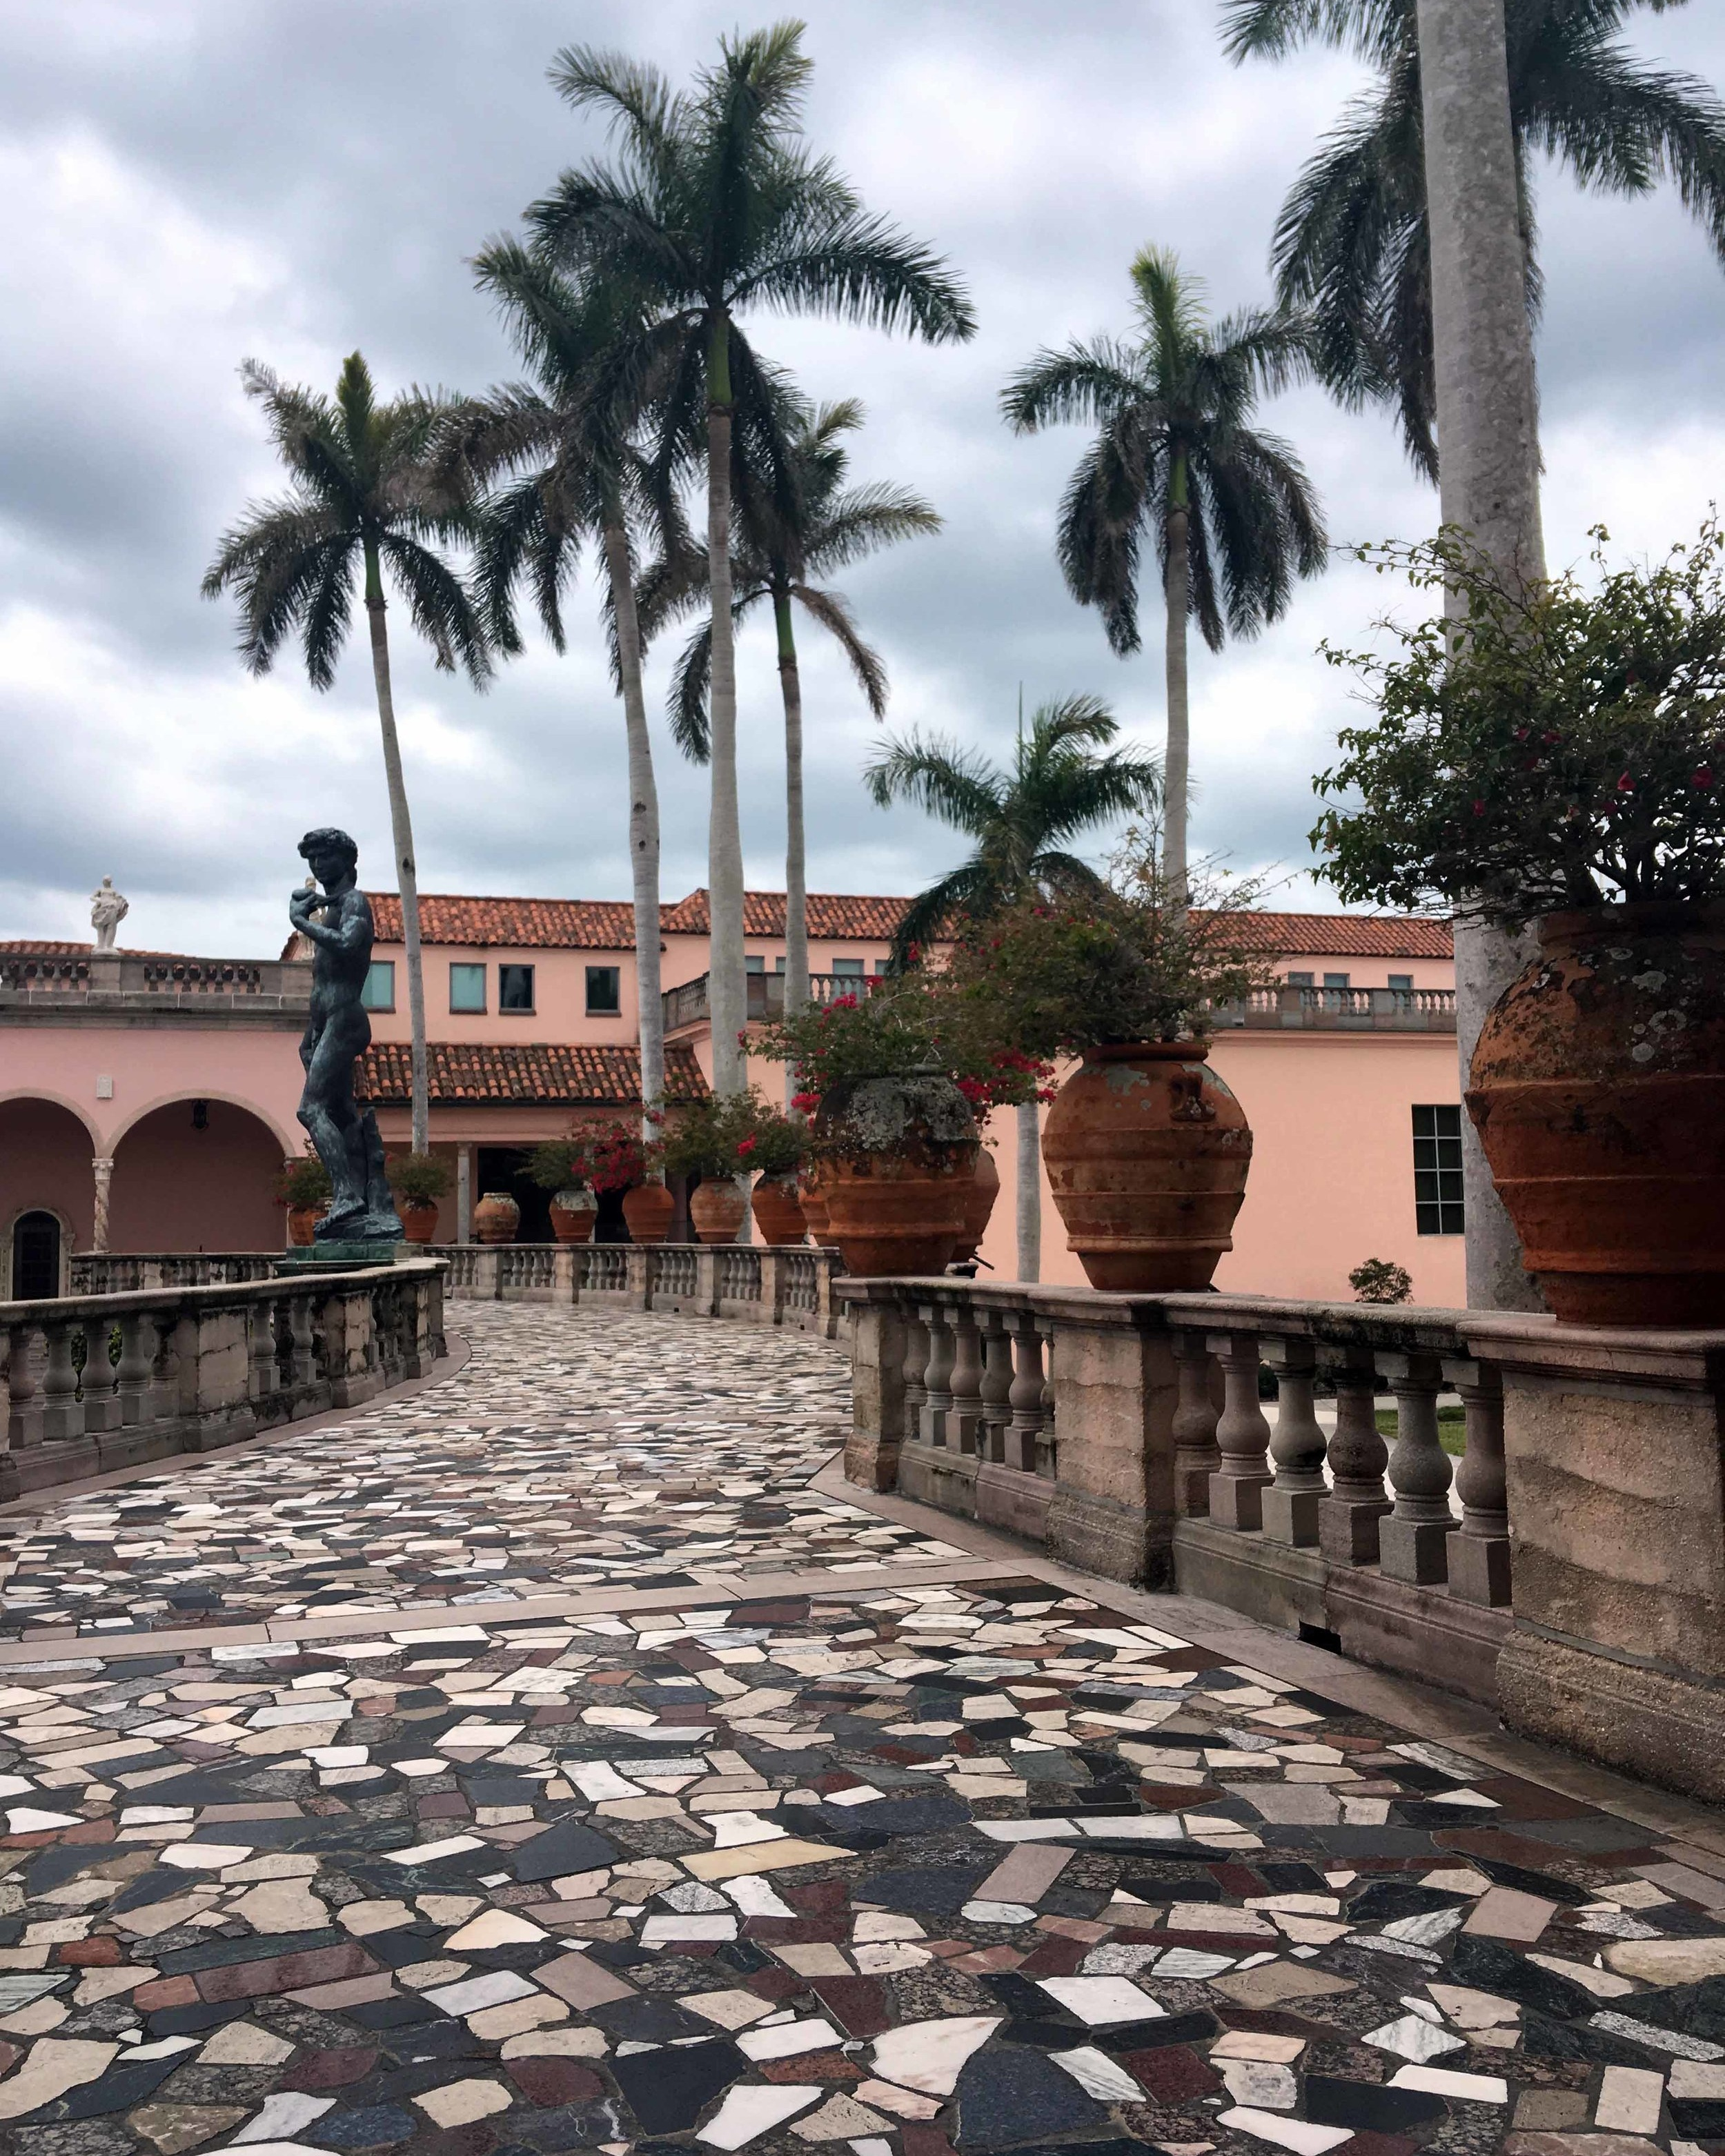 The stunning architecture at the Ringling Museum